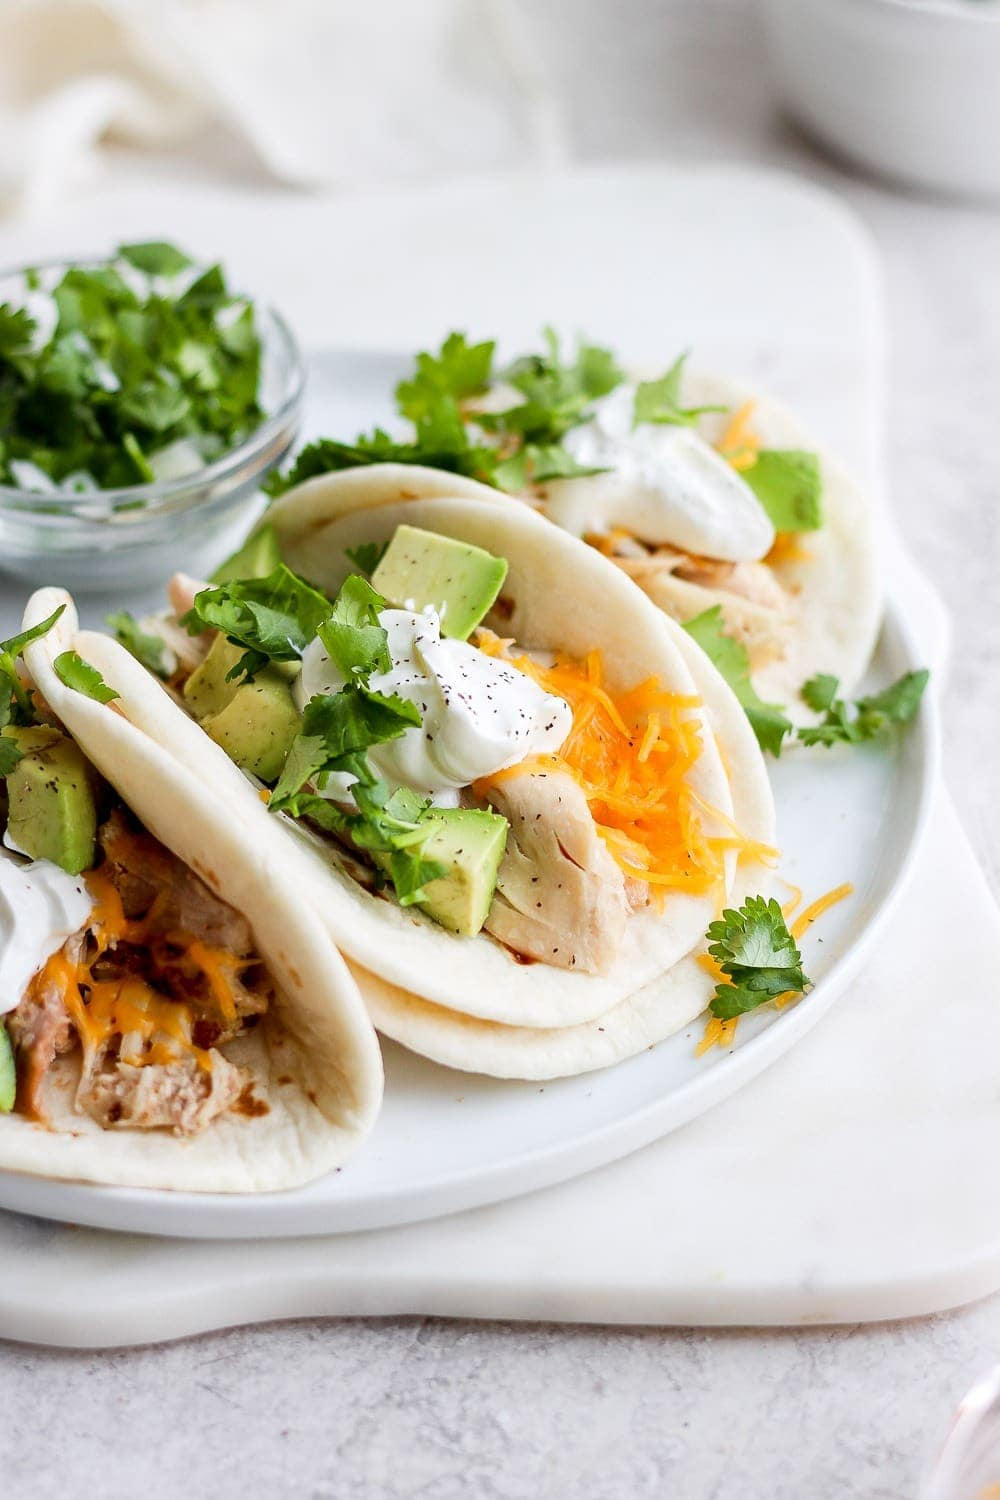 shredded chicken tacos on a plate